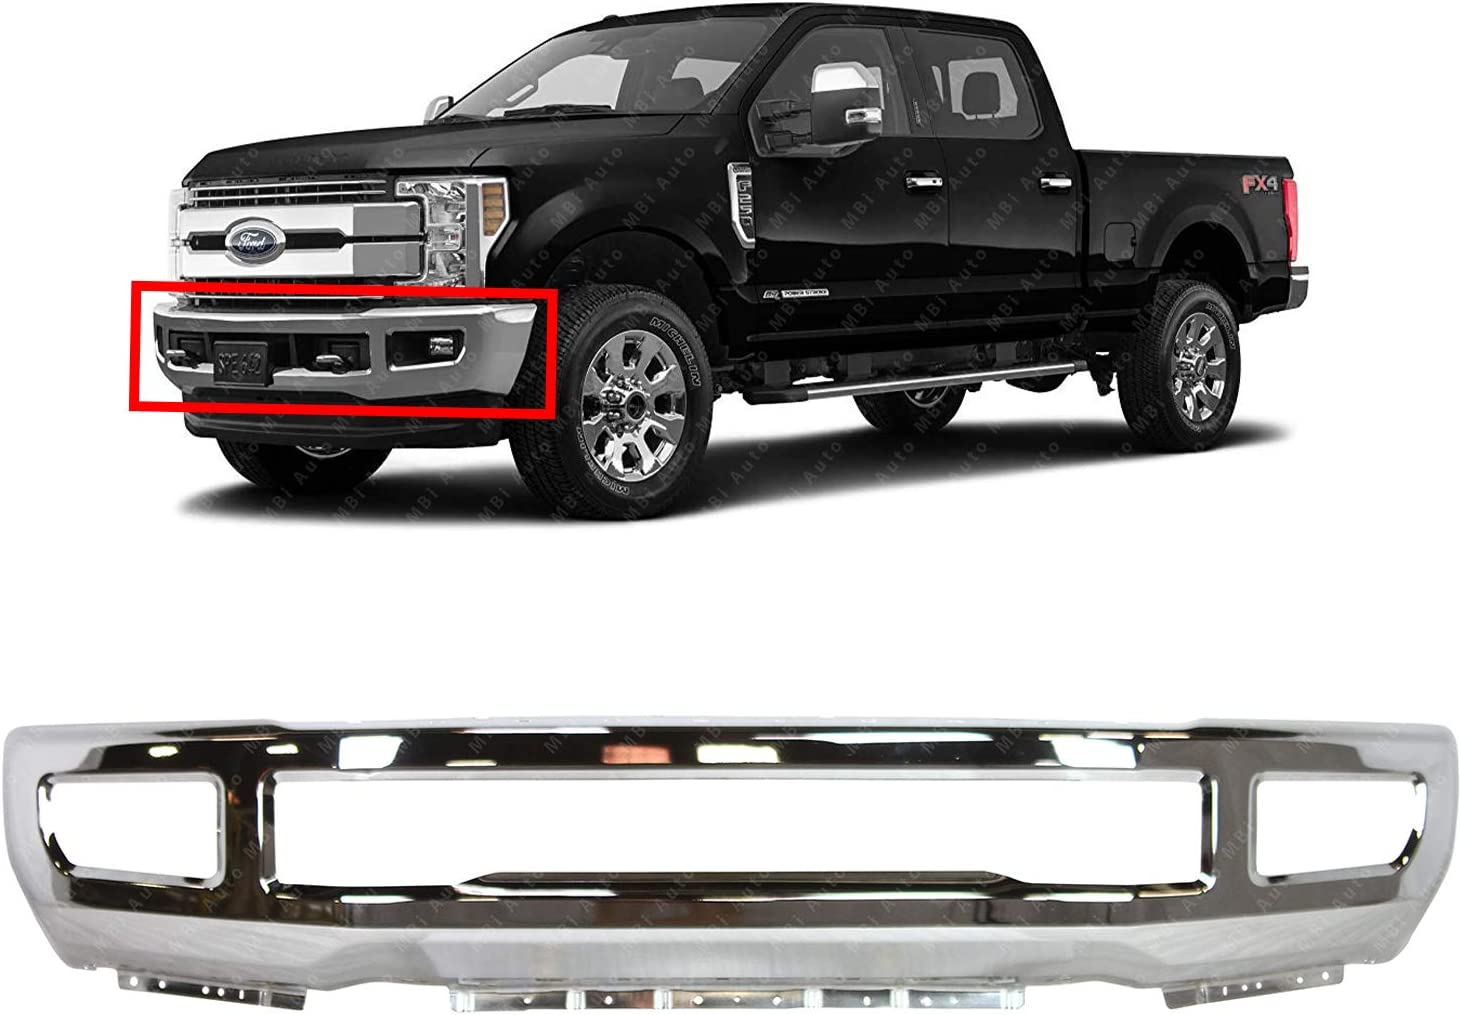 Chrome BUMPERS THAT DELIVER FO1002439 Steel Front Bumper Face Bar for 2017 2018 2019 Ford F-250 F-350 Super Duty 17 18 19